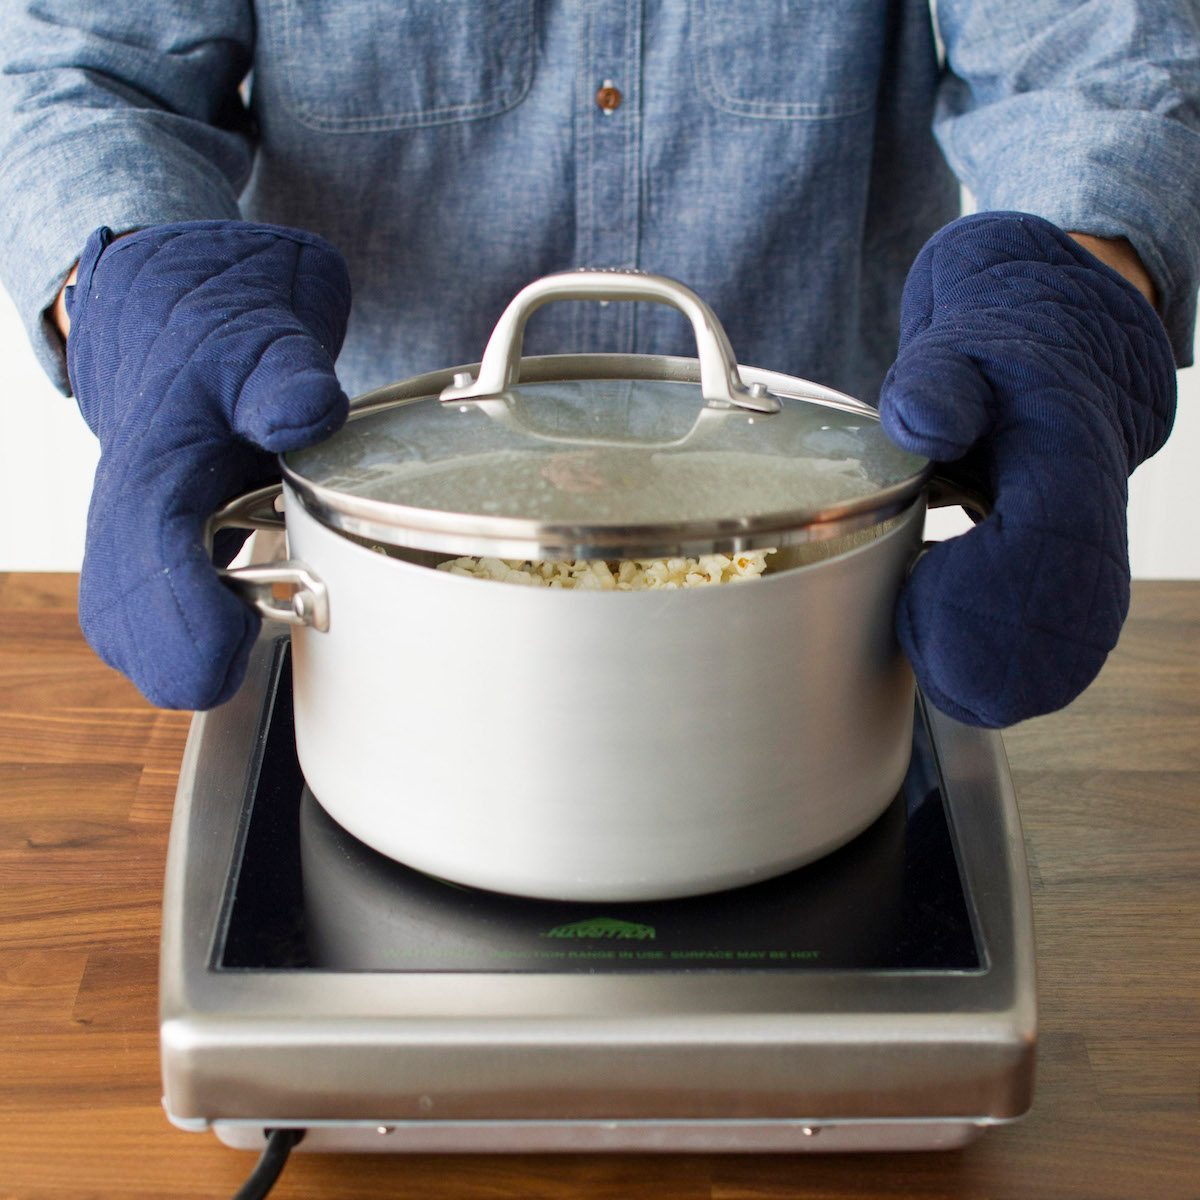 A person wearing oven mitts and shaking a pot of homemade stovetop popcorn over an electric burner.